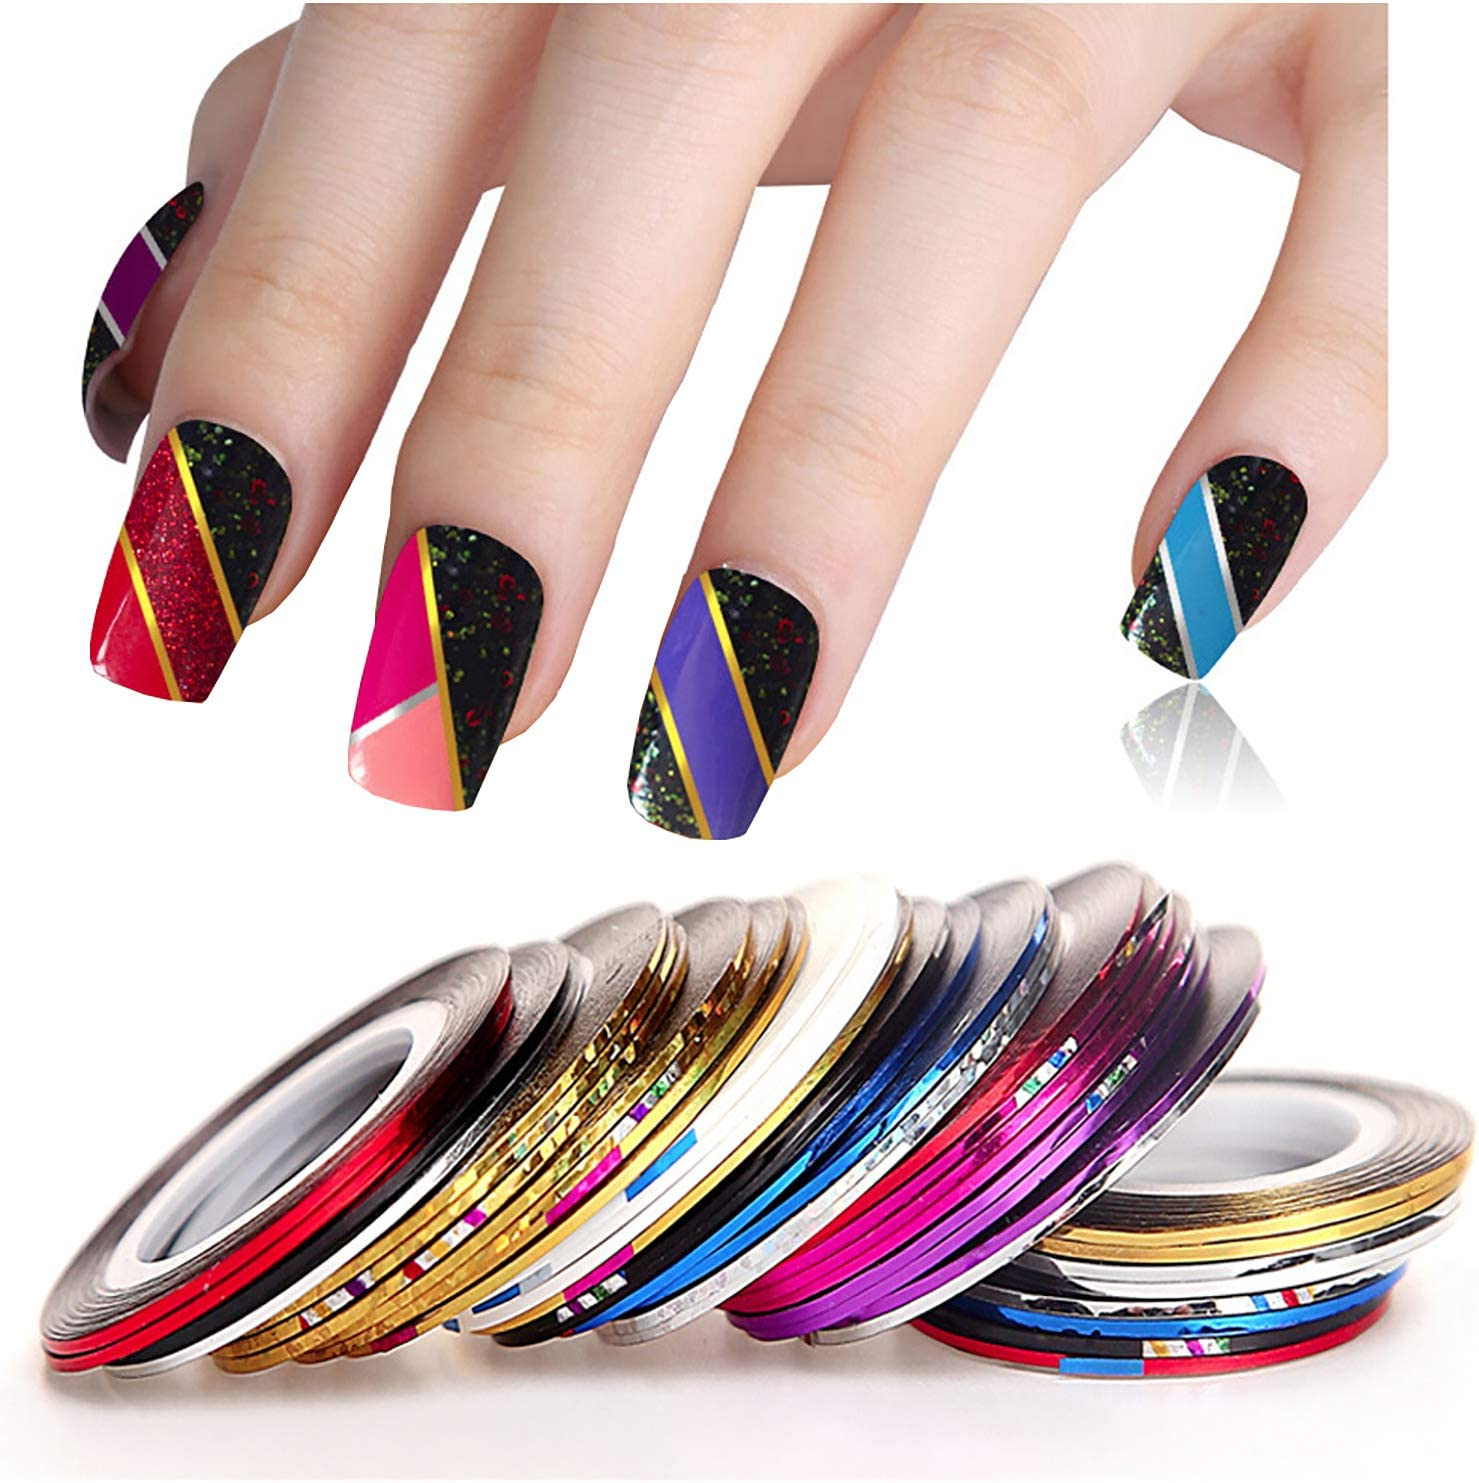 DIY ideas- How to get started with Nail Art?